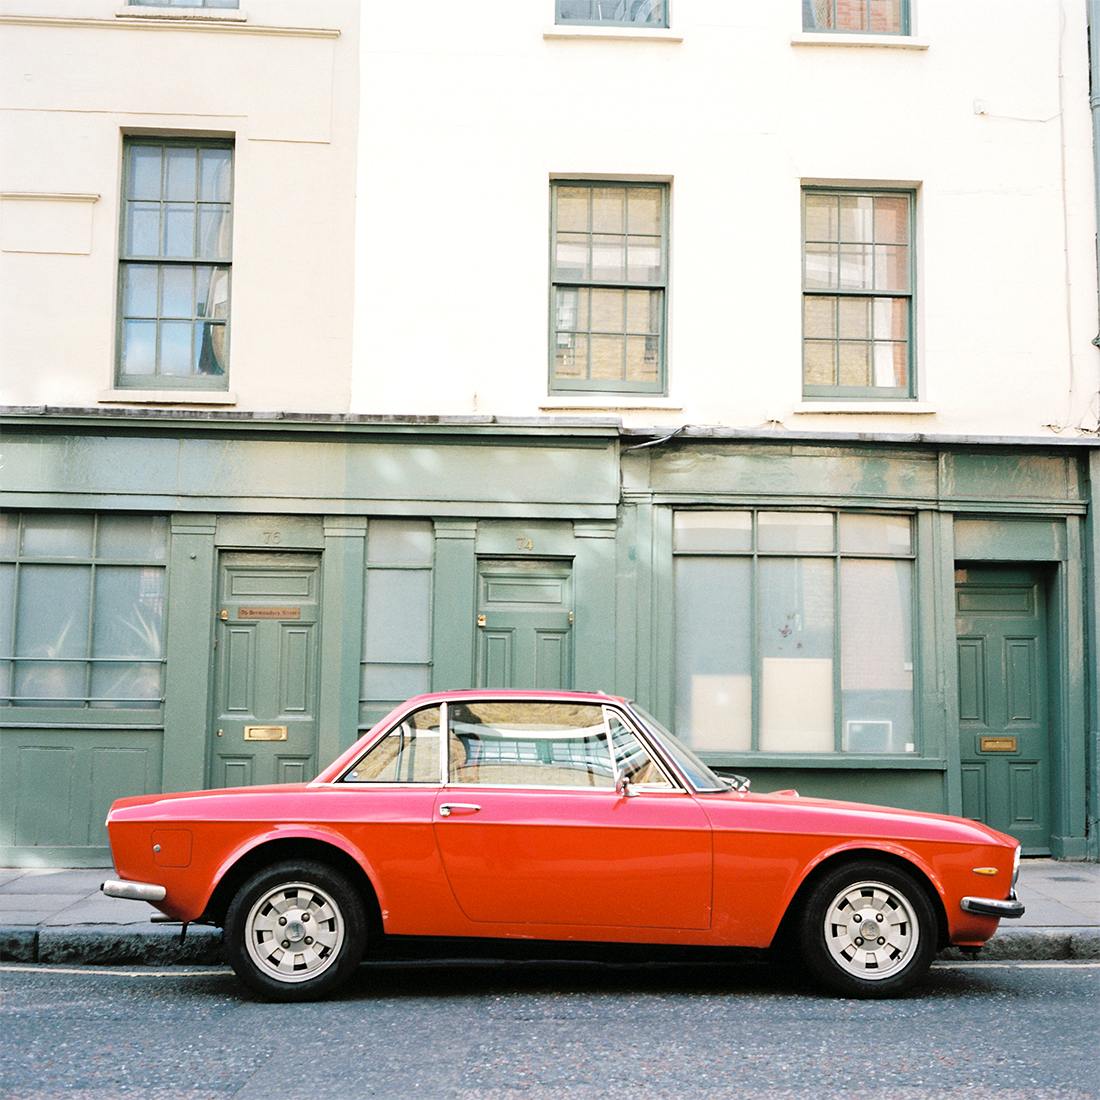 Red Car in London